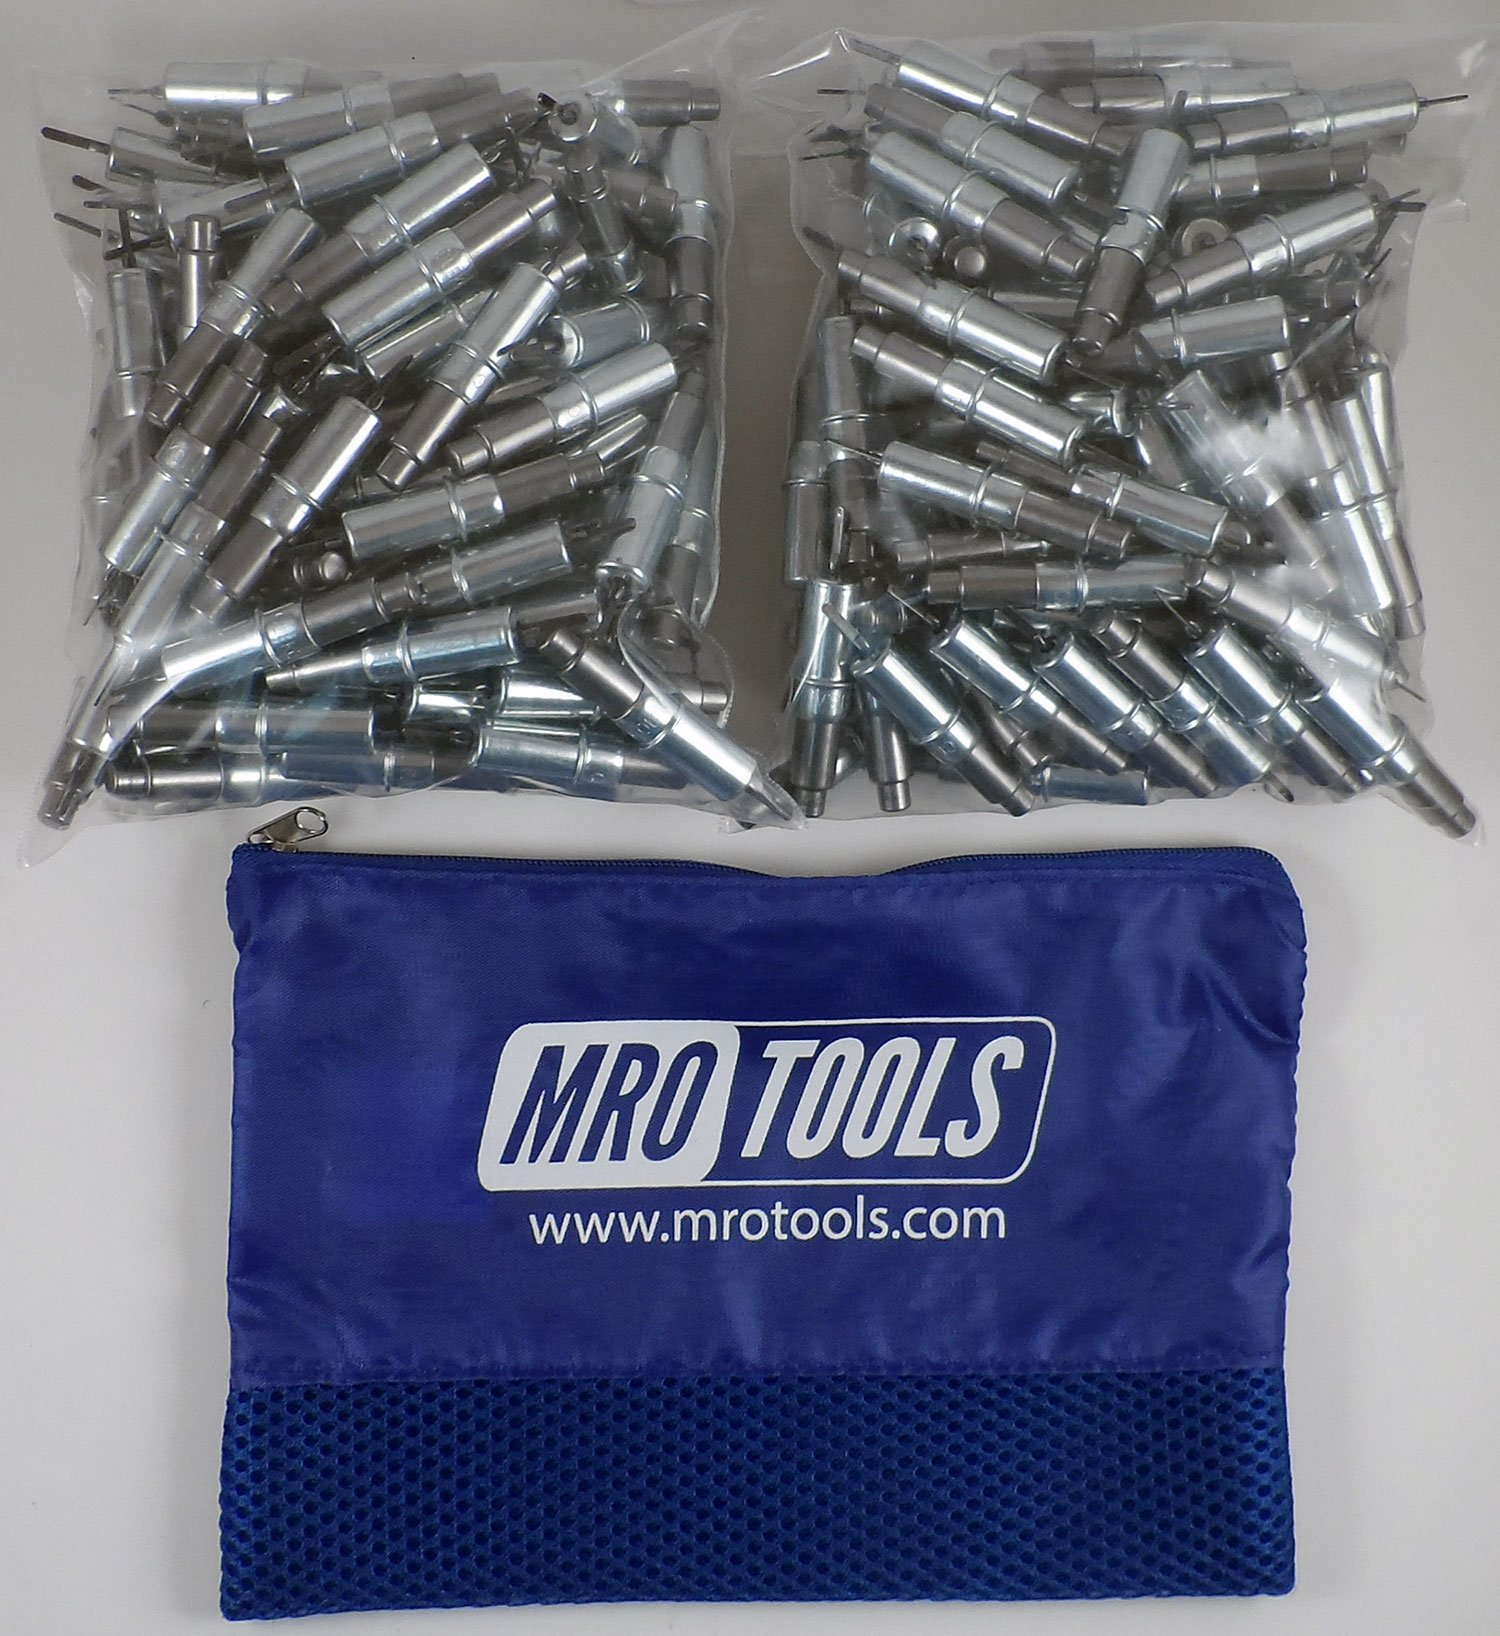 250 3/32 Heavy Duty Cleco Sheet Metal Fasteners w/ Mesh Carry Bag (KHD2S250-3/32) by MRO Tools Cleco Fasteners